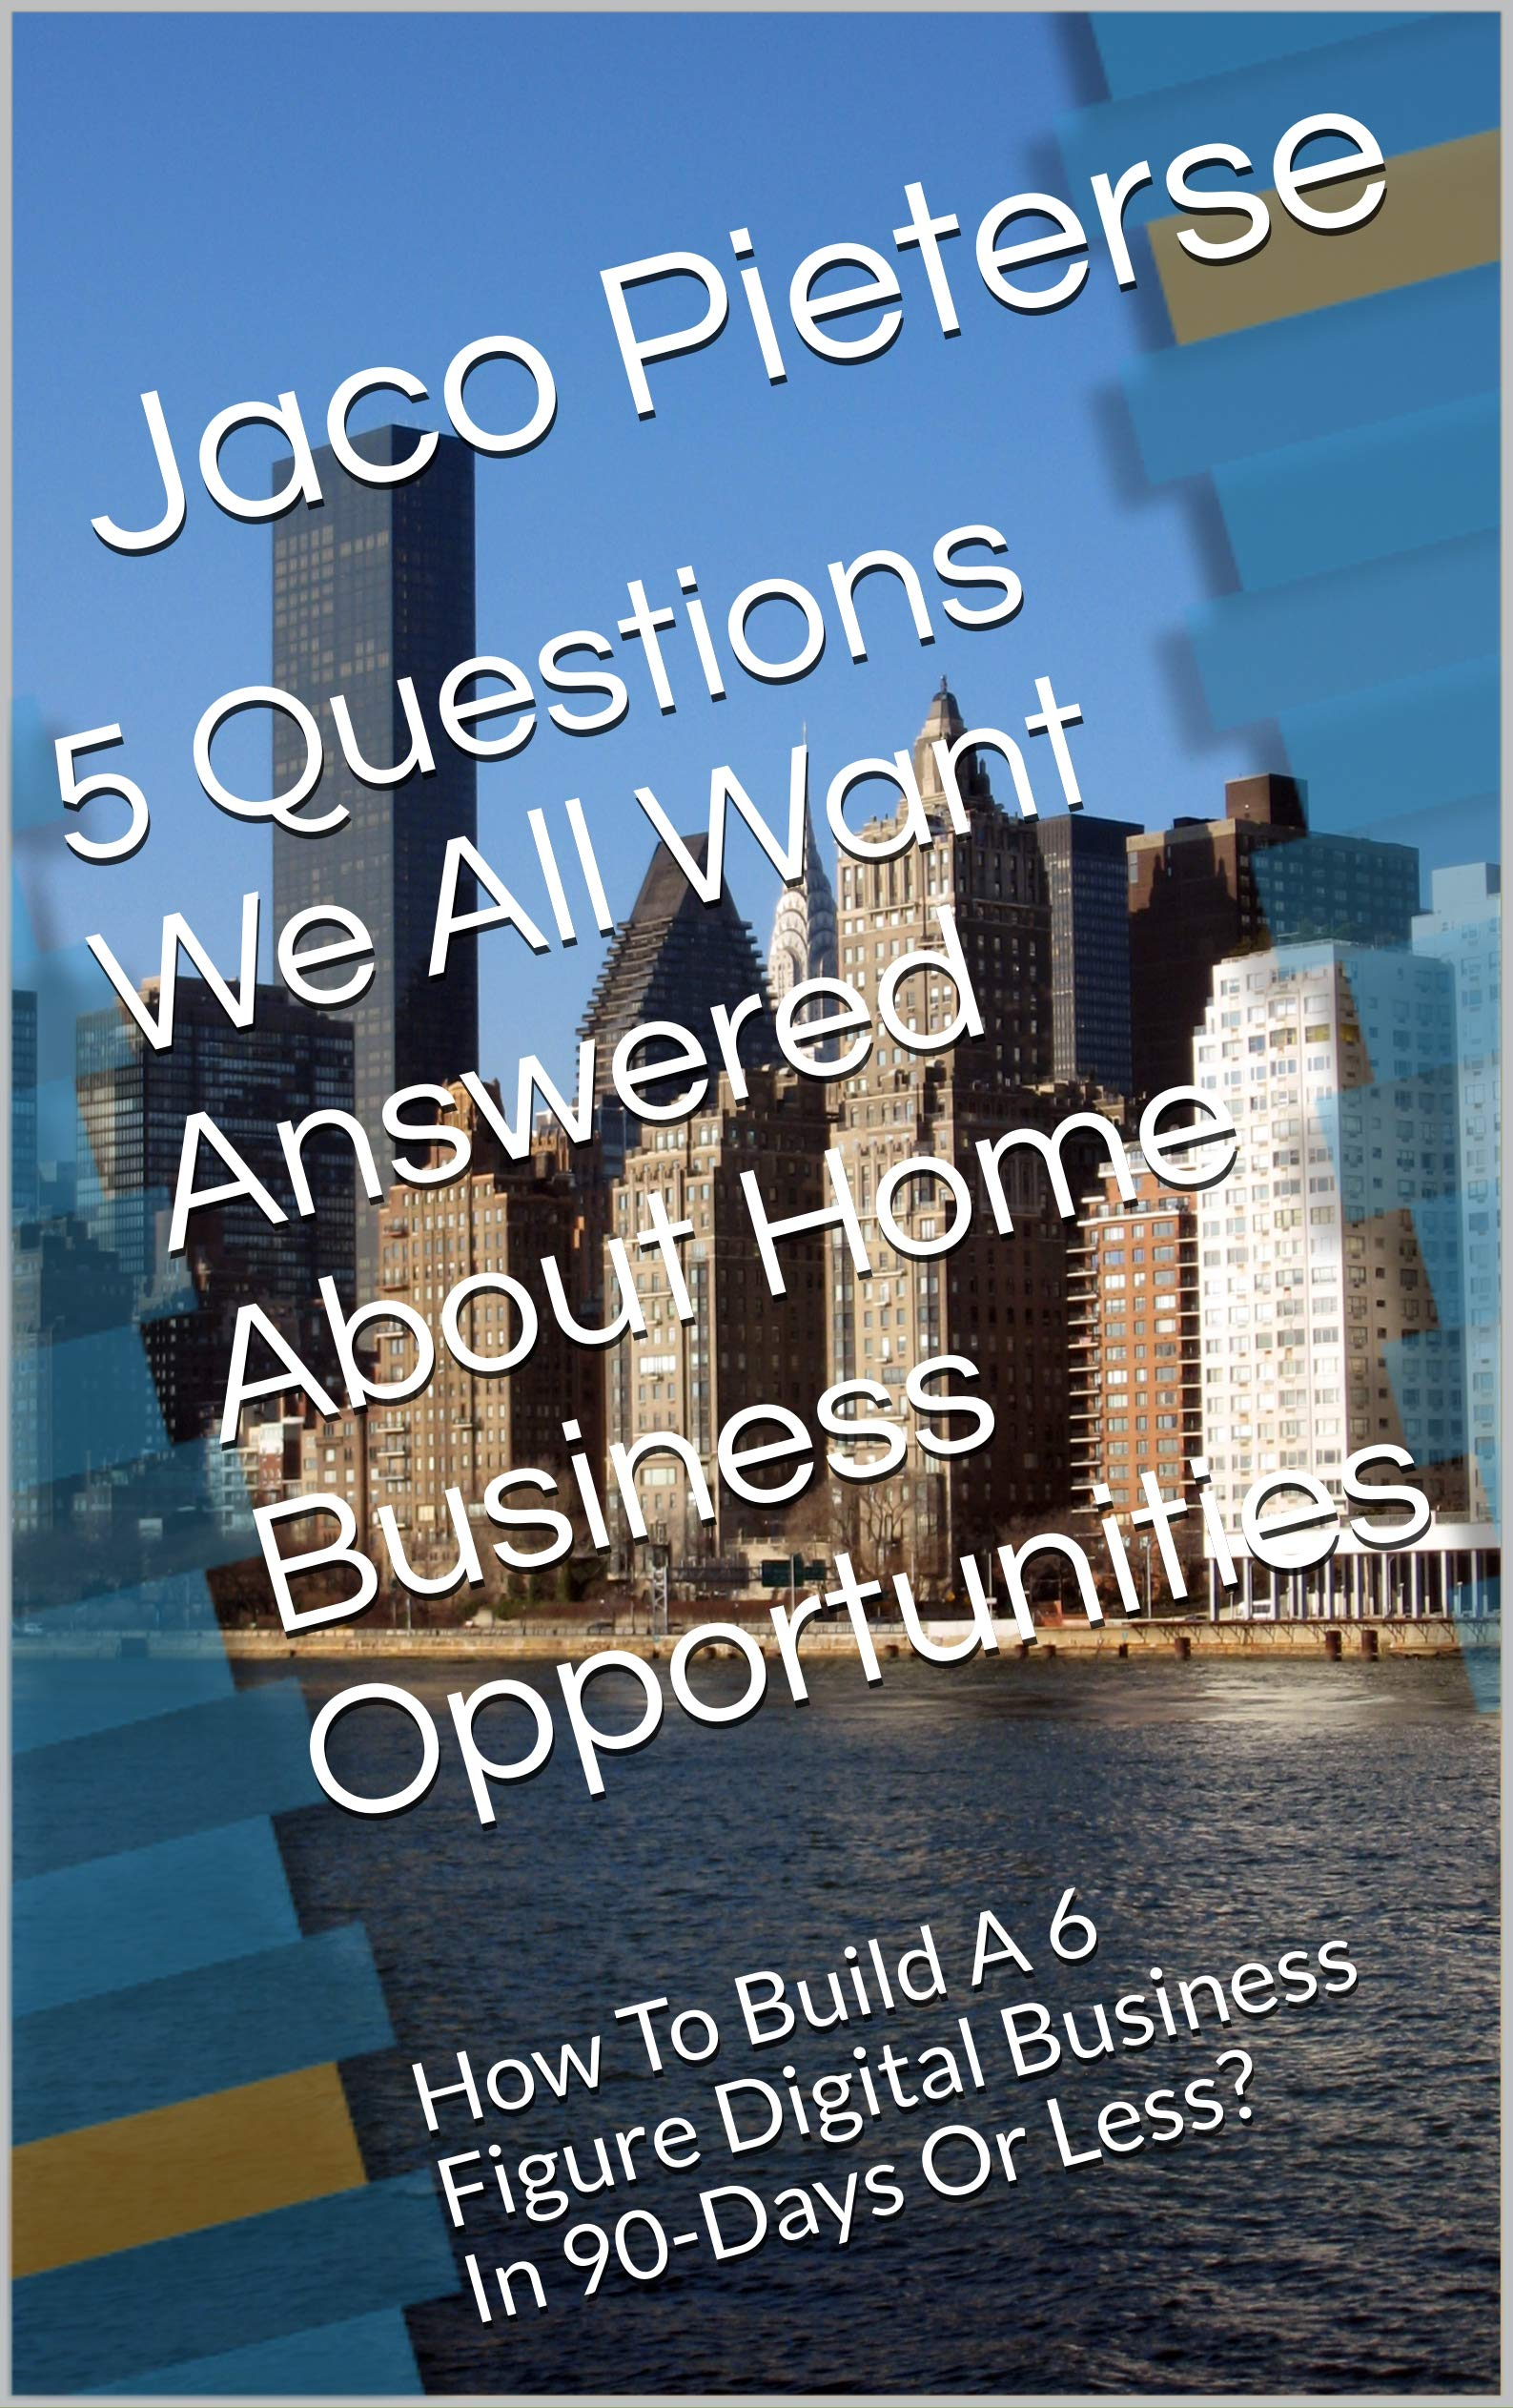 5 Questions We All Want Answered About Home Business Opportunities: How To Build A 6 Figure Digital Business In 90-Days Or Less?